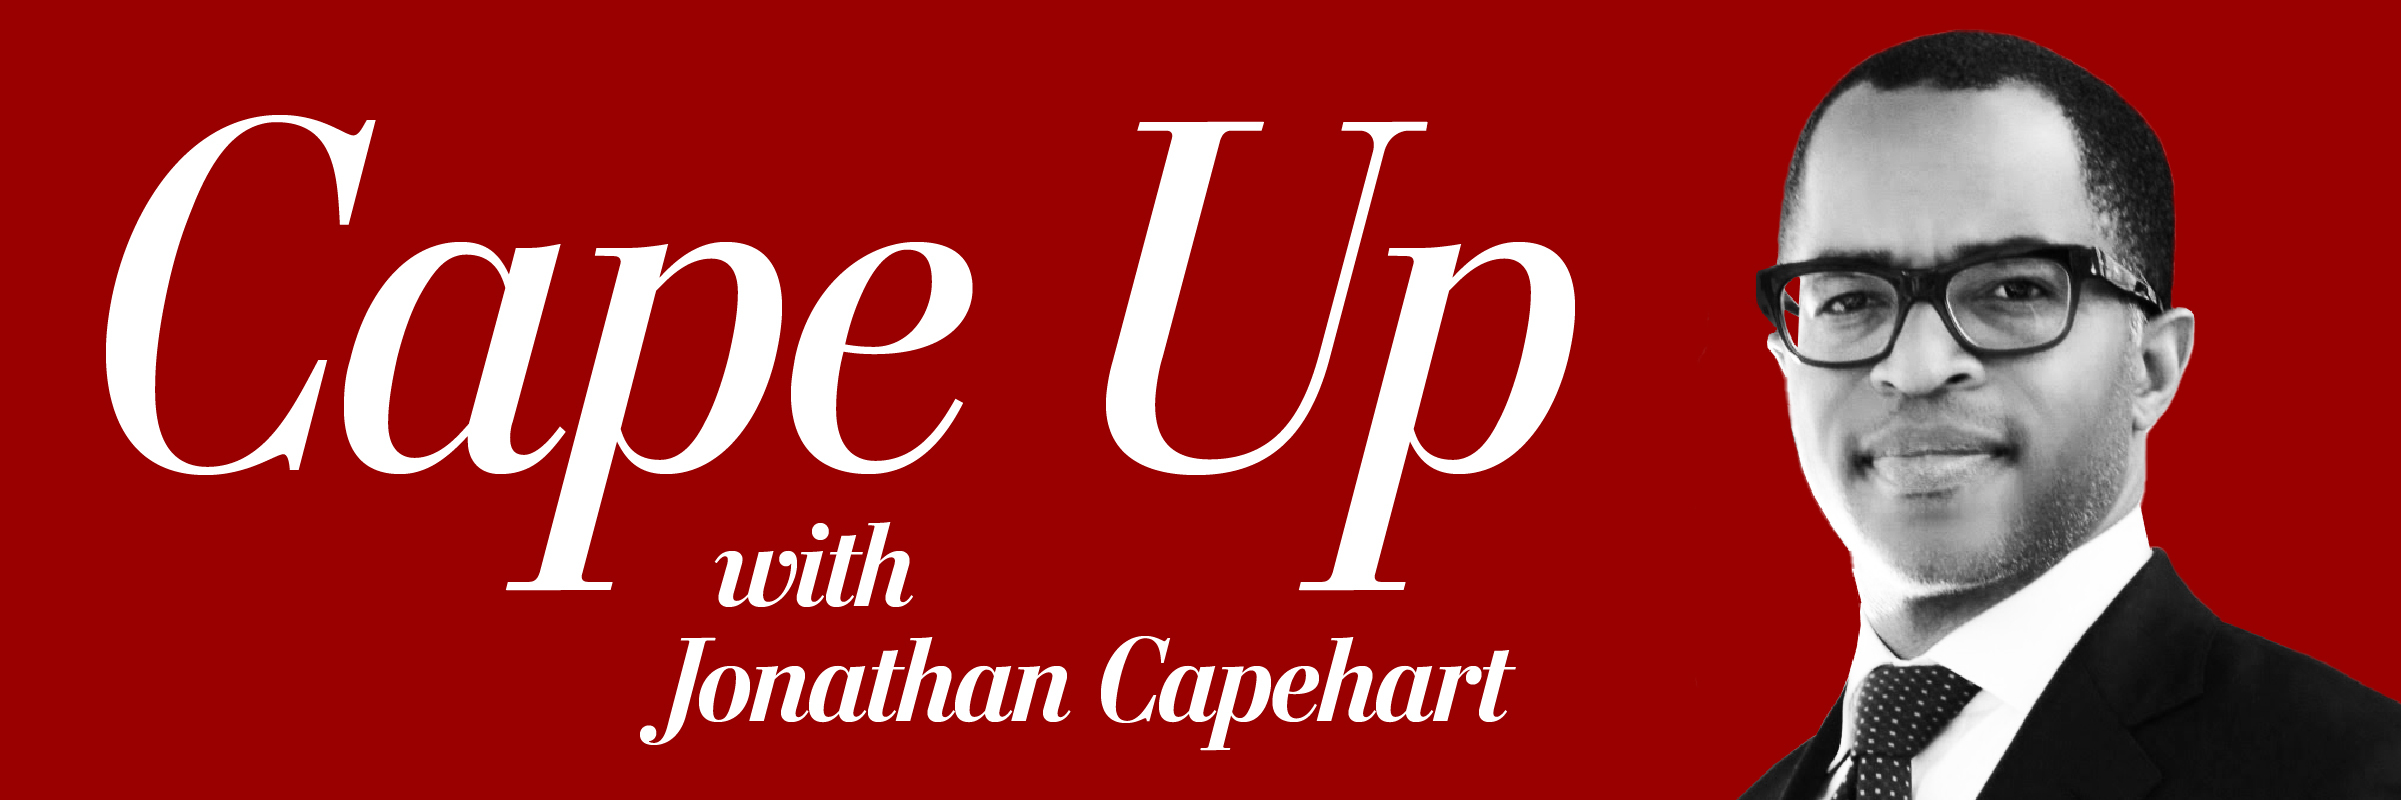 Cape Up with Jonathan Capehart Series Cover Image